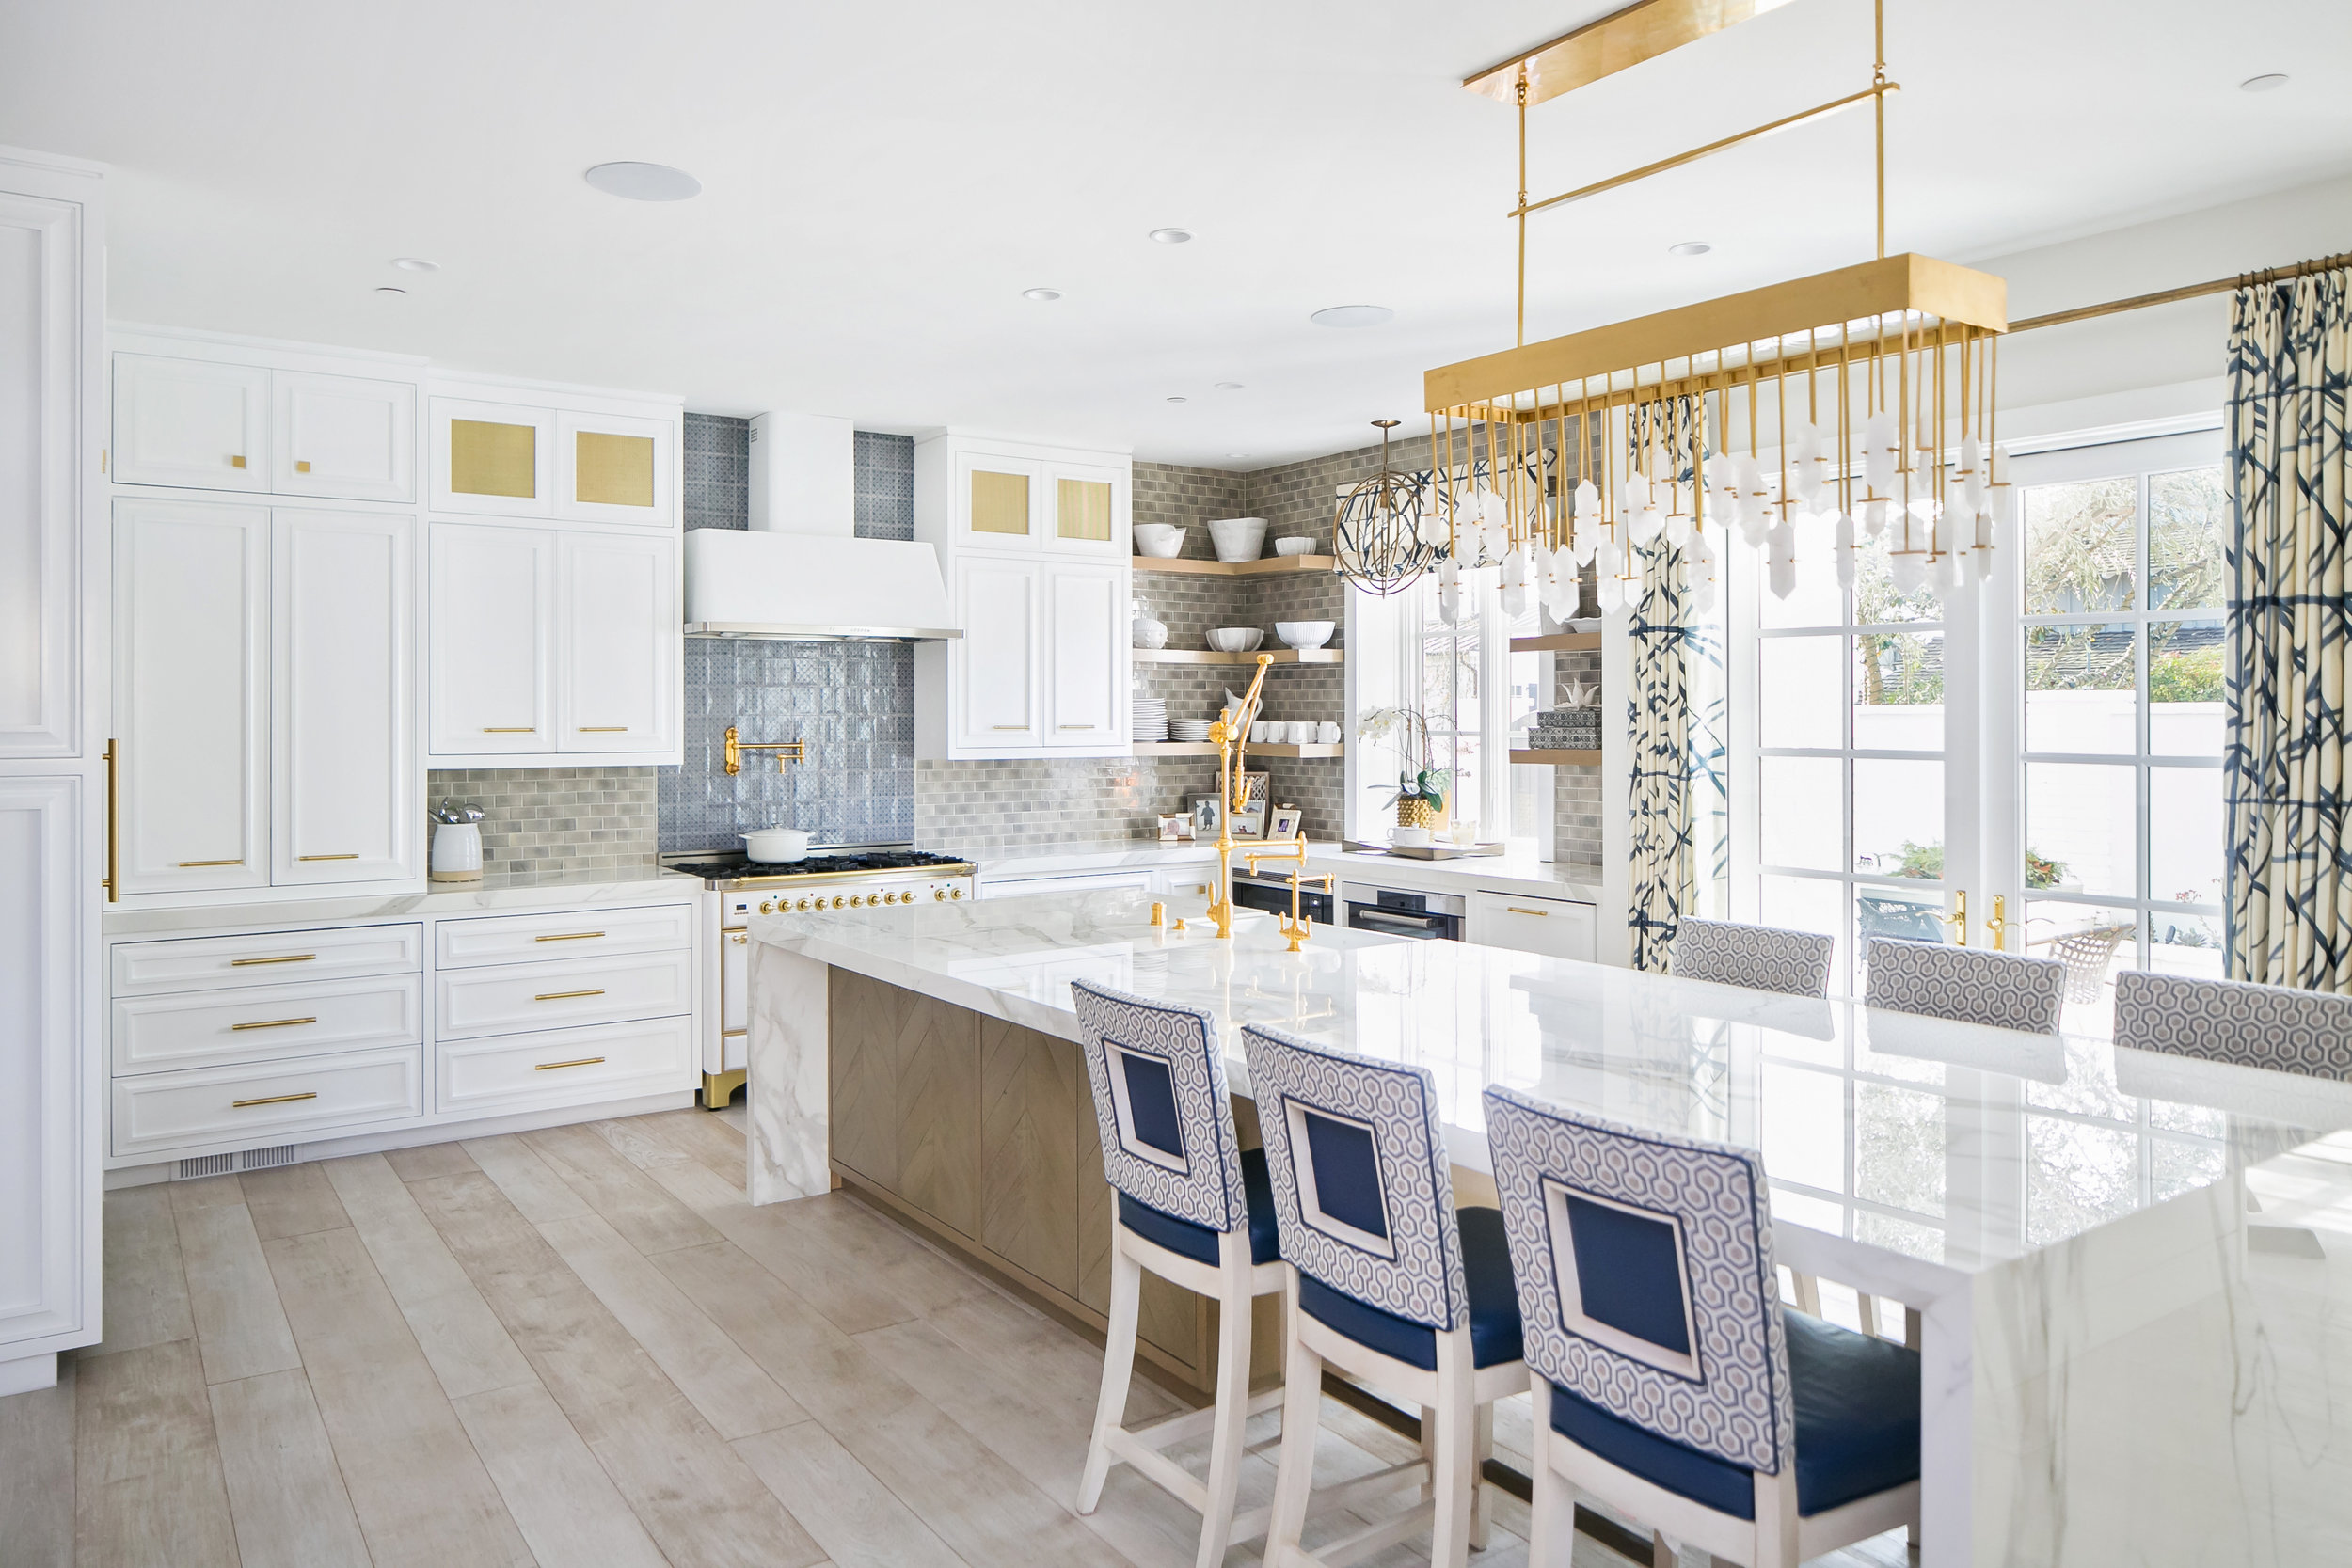 interior-designers-newport-beach-kitchen.jpg